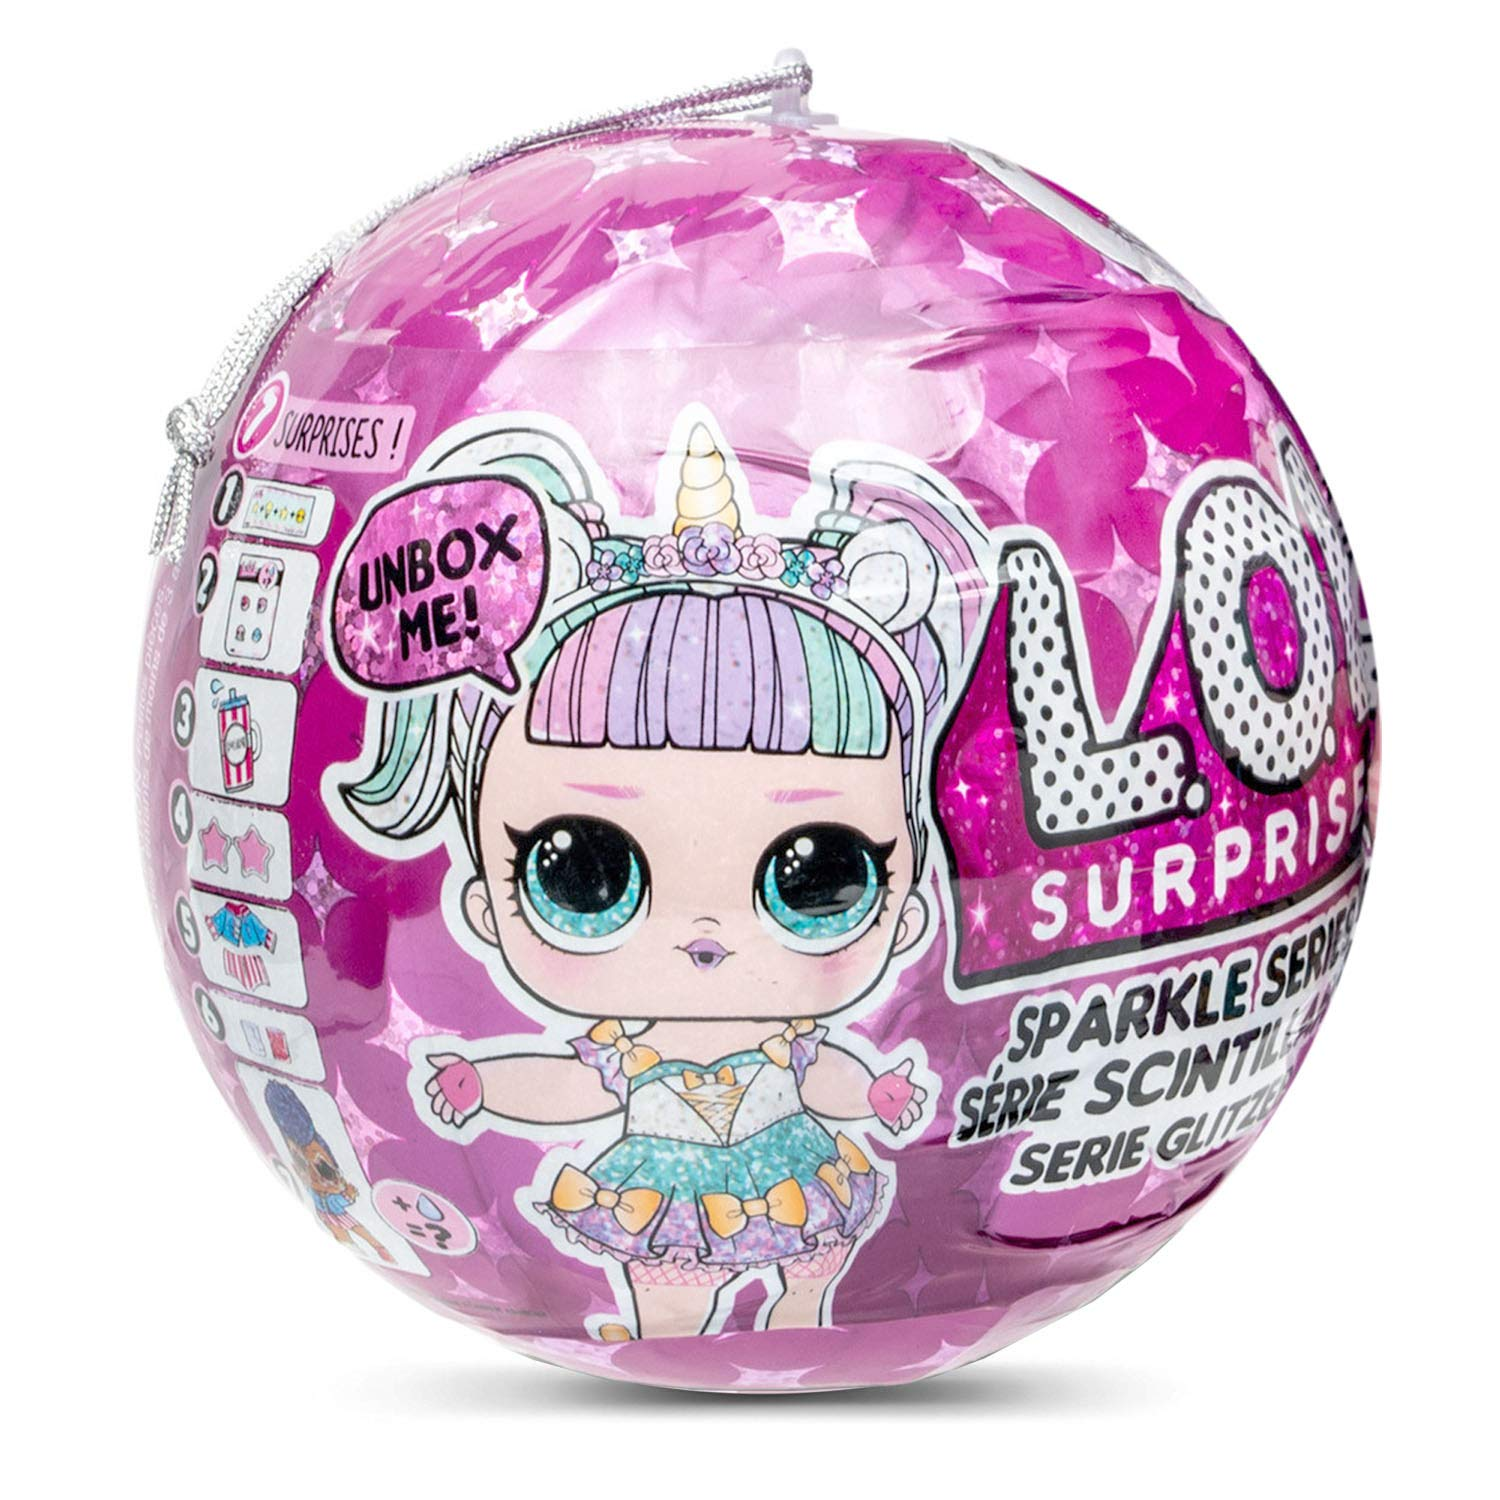 LOL Surprise 560296E7C Sparkle Series with Glitter Finish and 7 Surprises, Multi